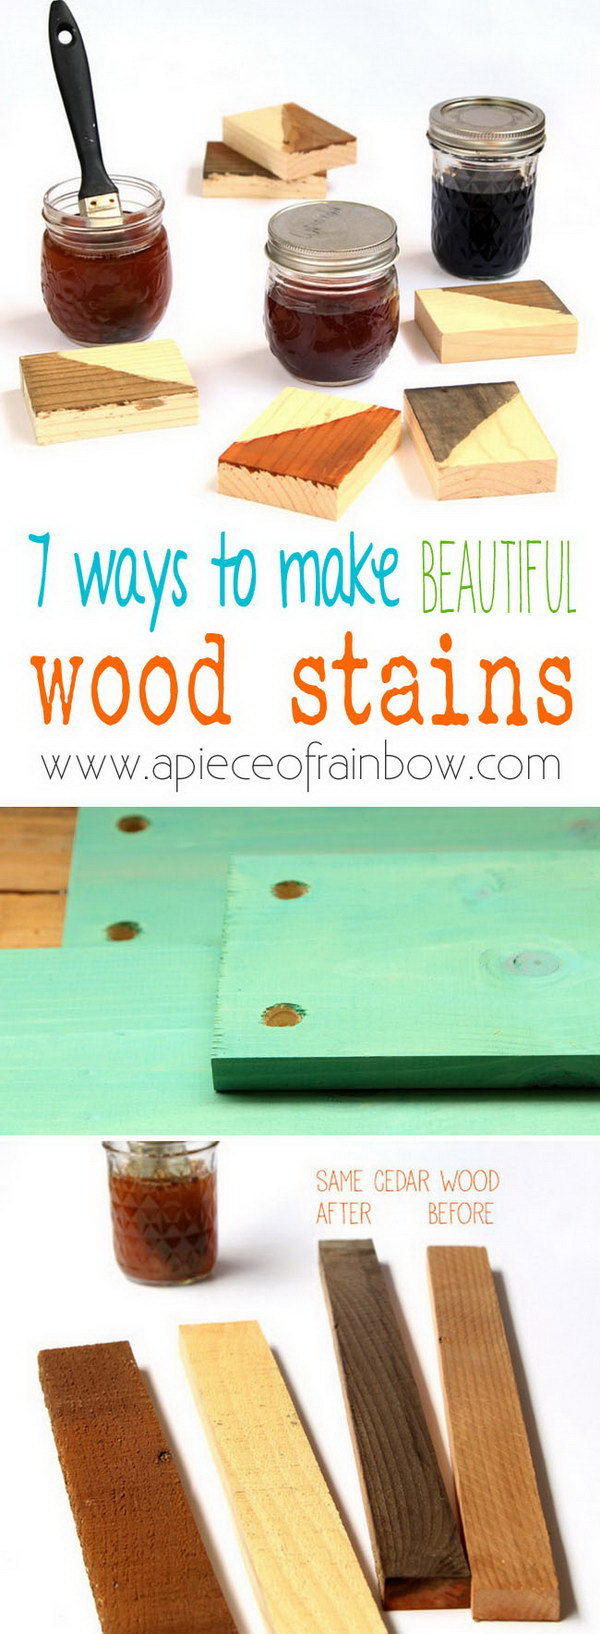 Homemade Natural & Effective Wood Stains.